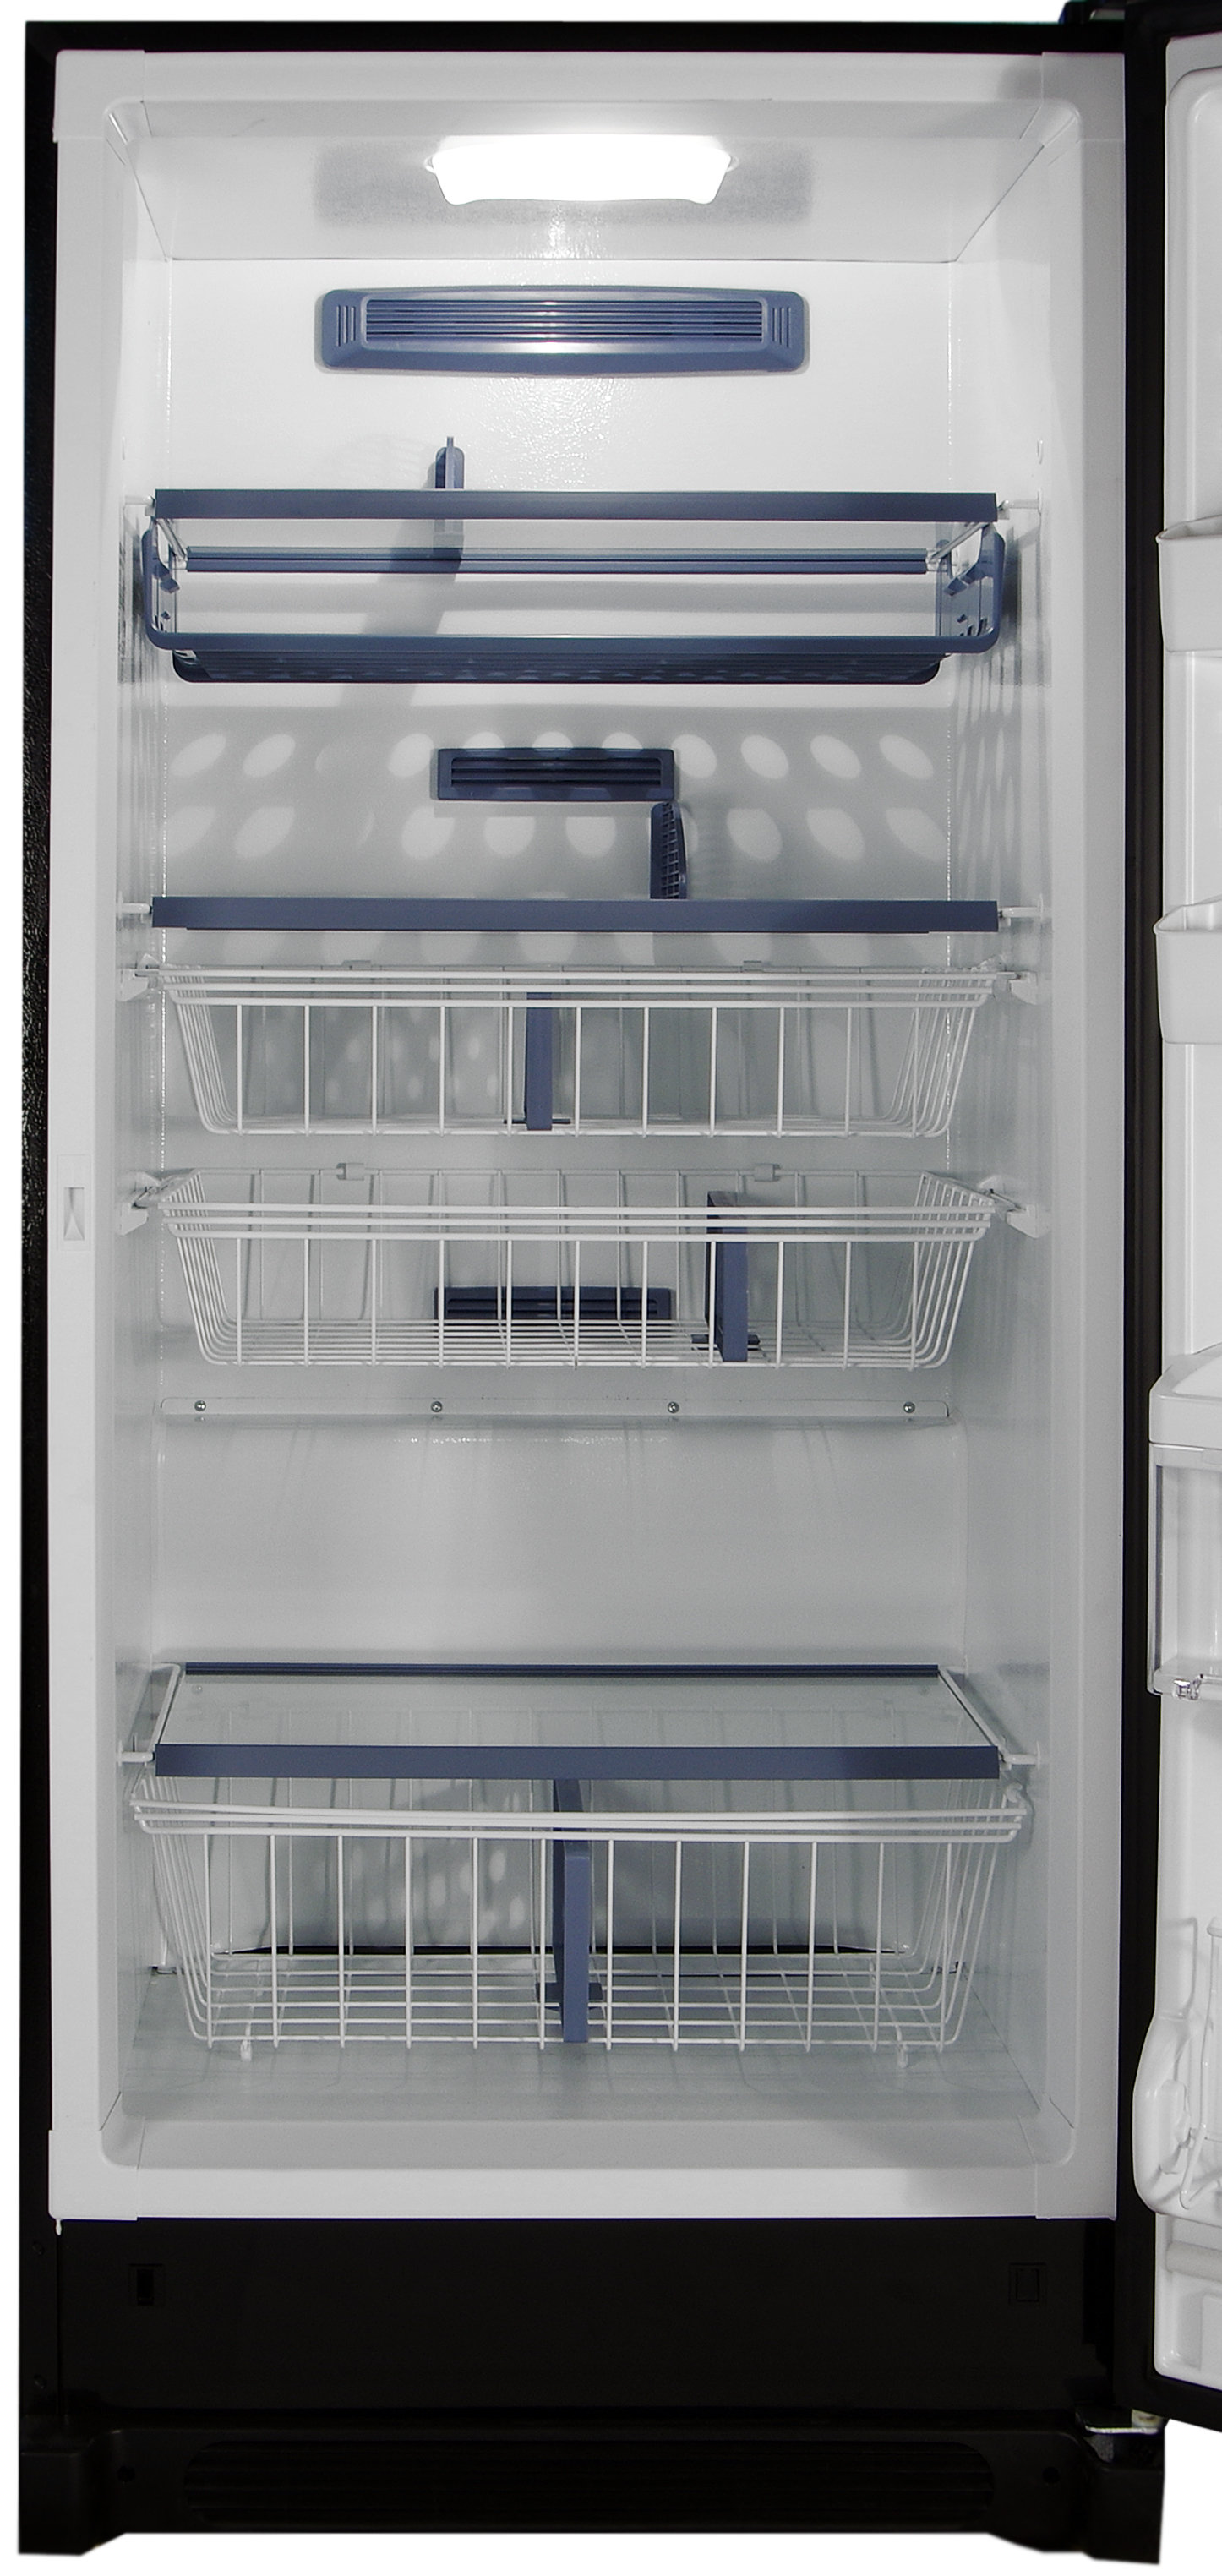 Pizza racks, sliding drawers, glass shelves: it's all found in the Kenmore Elite 28093 freezer.